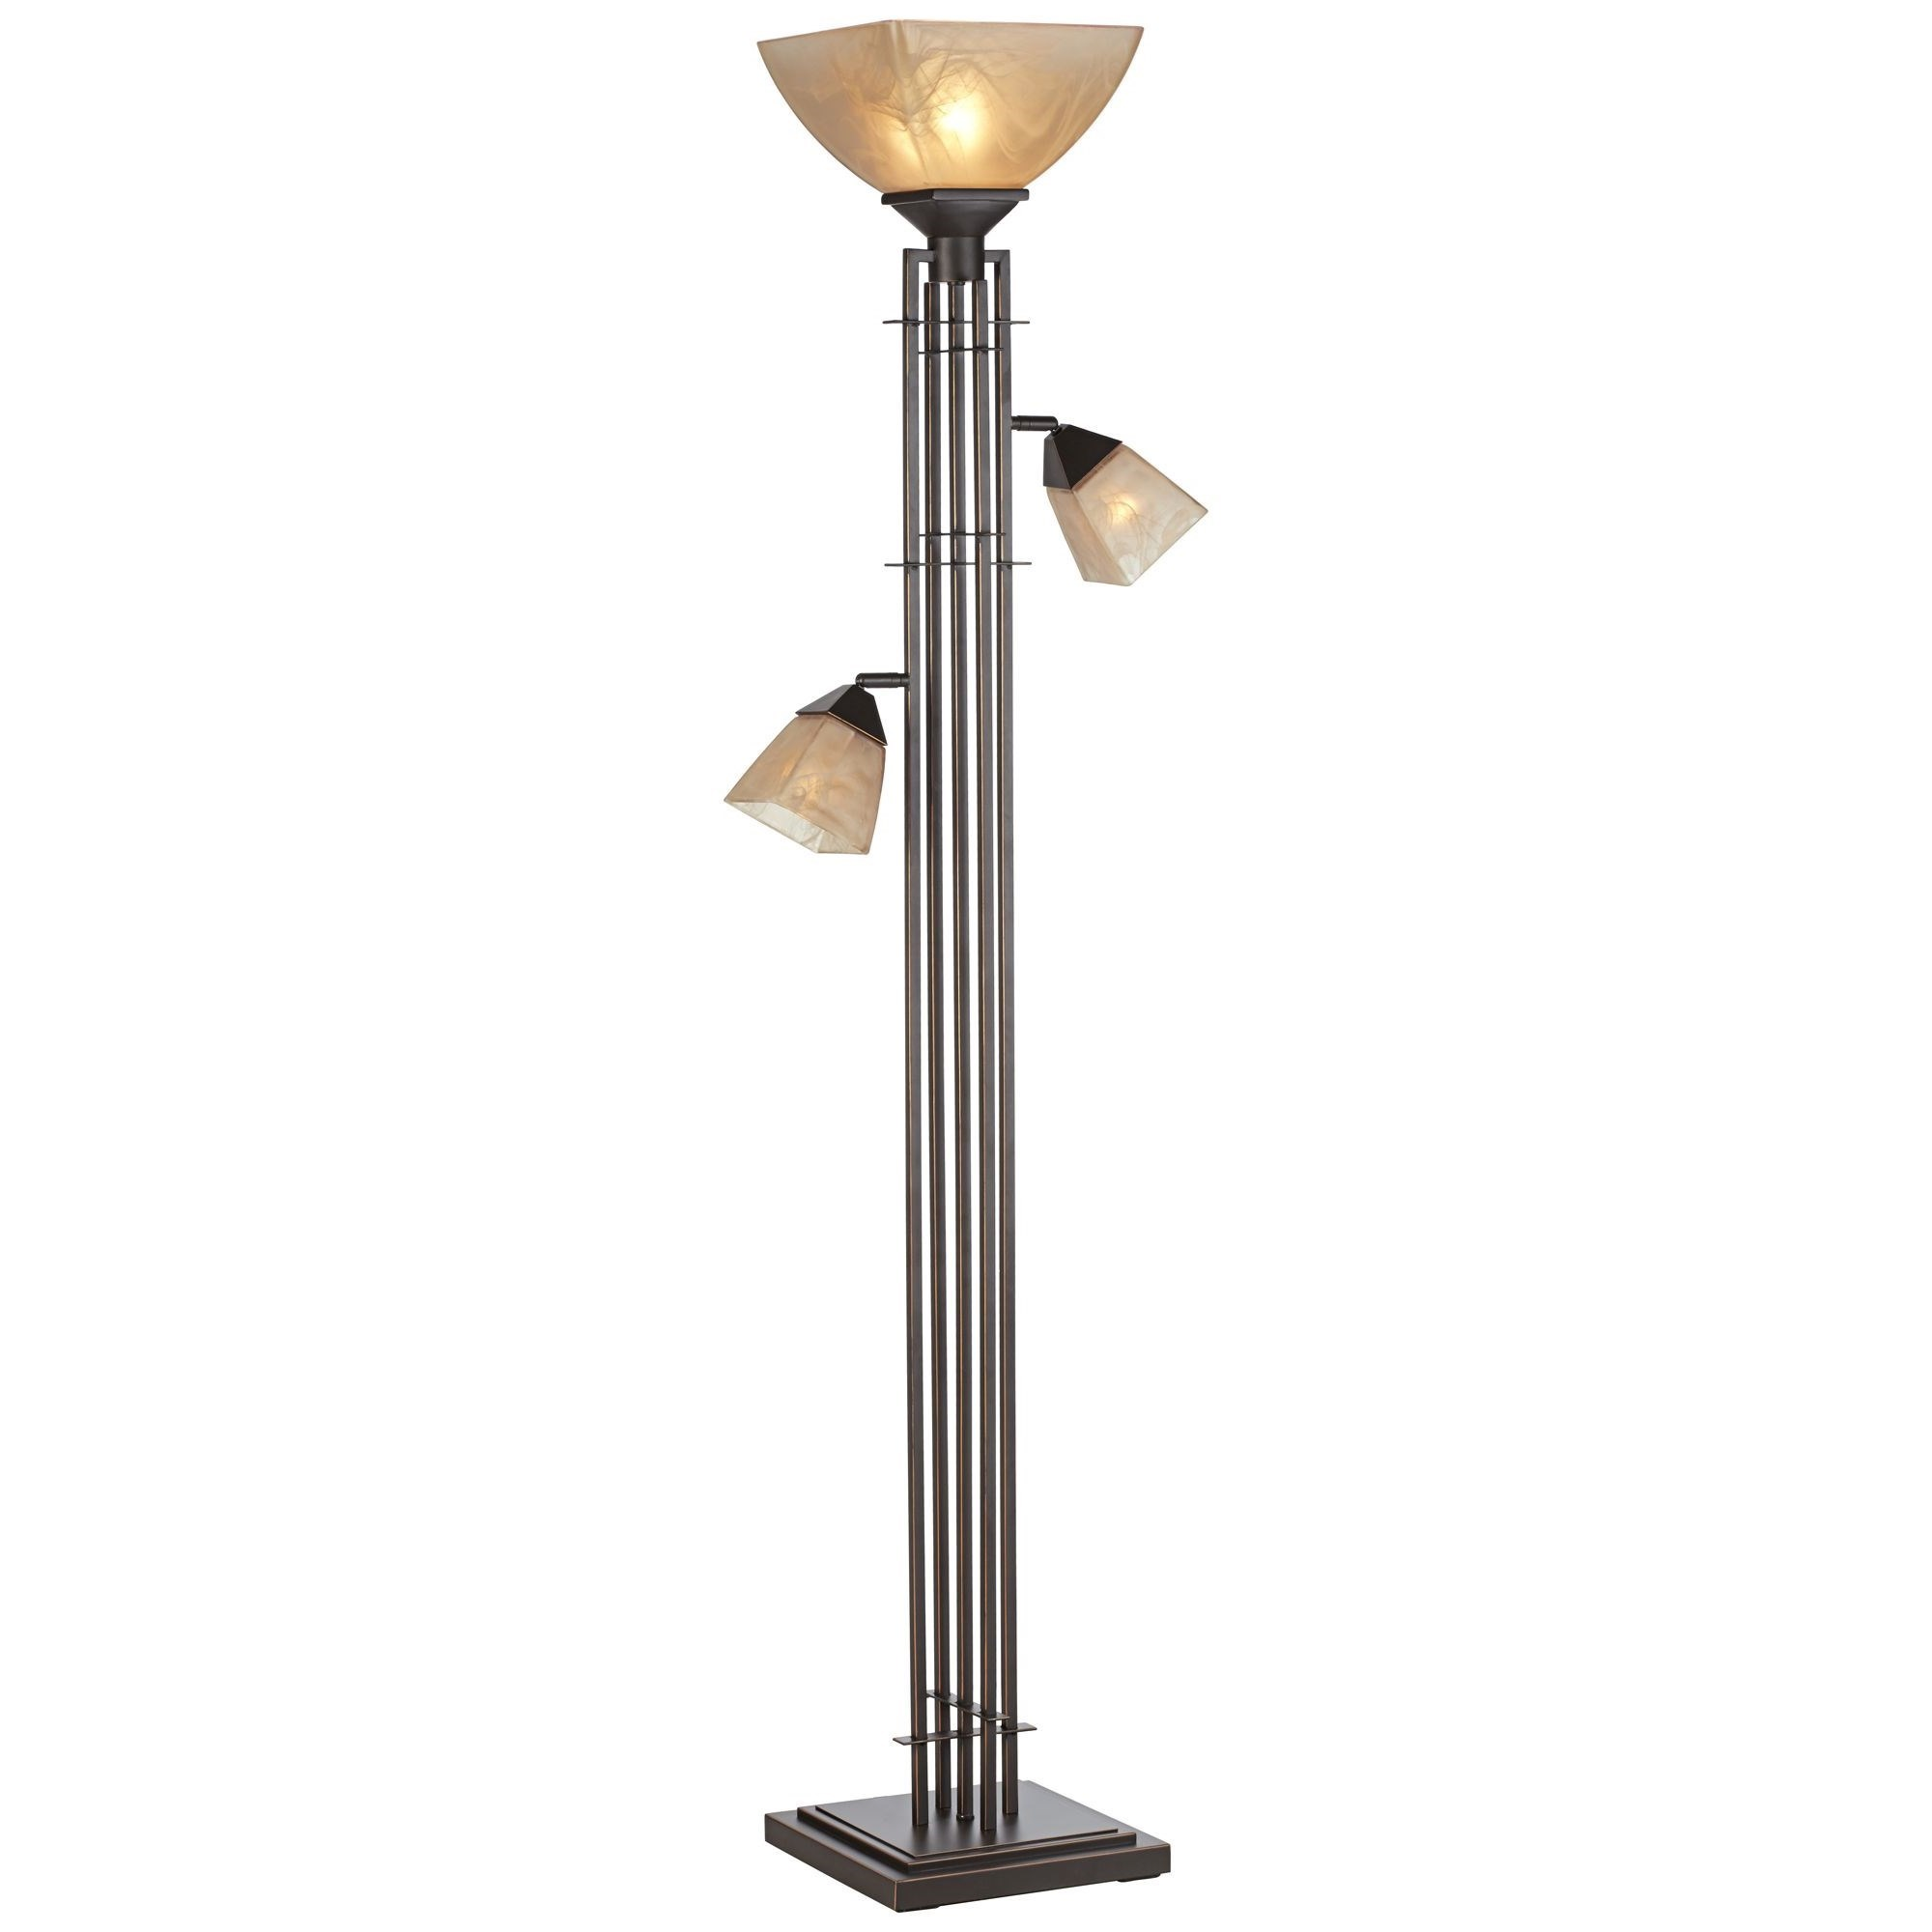 PCL FLOOR LAMPS City Lines by PCL LIGHTING at Walker's Furniture